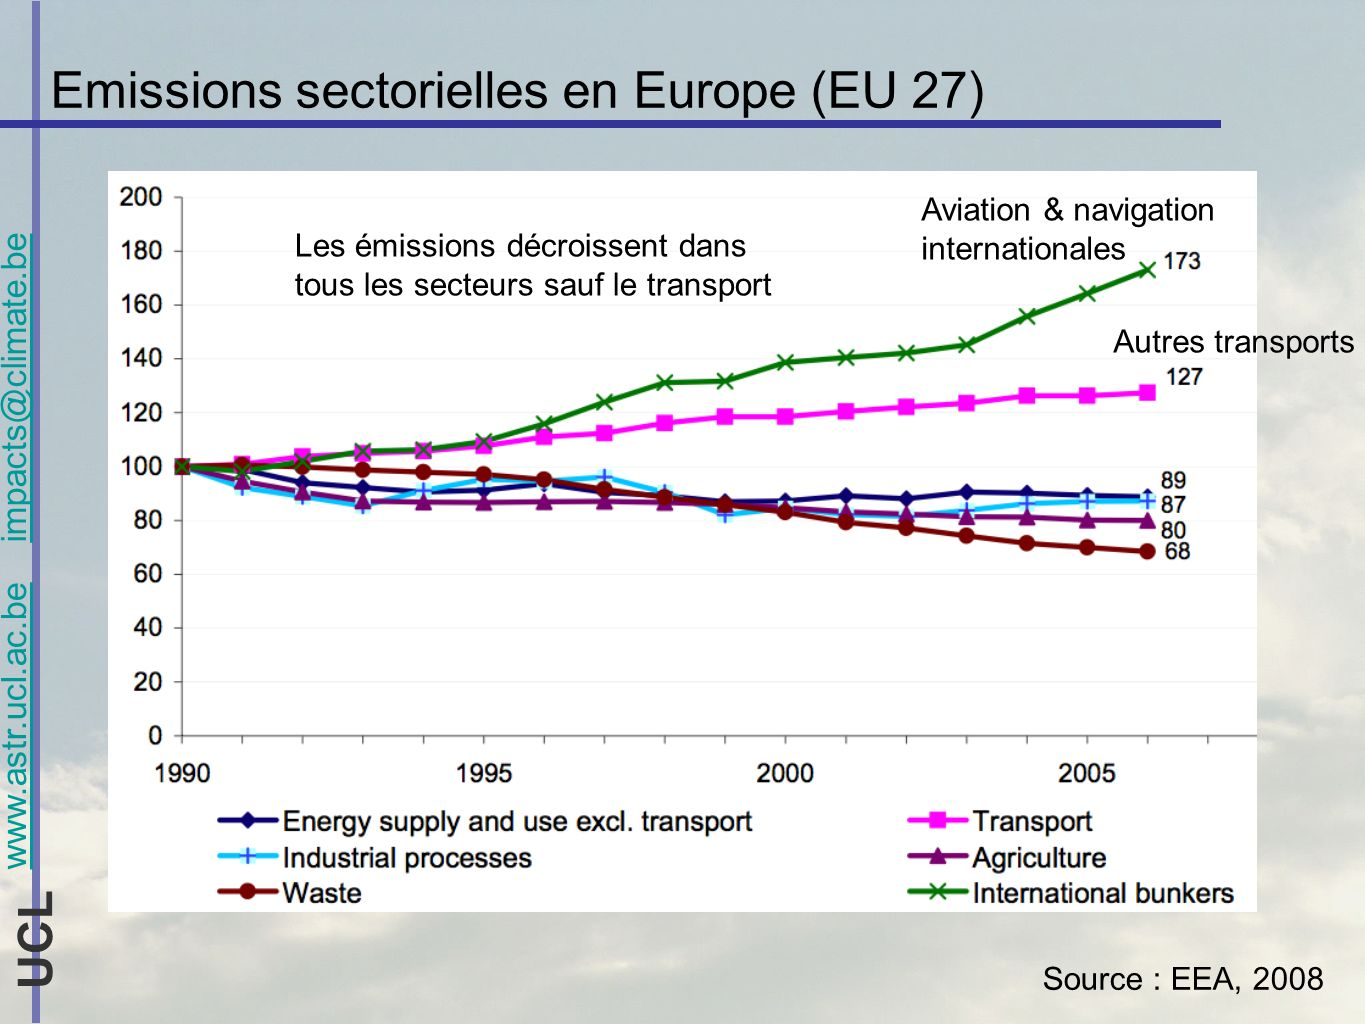 www.astr.ucl.ac.be impacts@climate.be UCL Emissions sectorielles en Europe (EU 27) Source : Transports & Environment, 2008 (based on EEA, 2008) Source : EEA, 2008 Les émissions décroissent dans tous les secteurs sauf le transport Aviation & navigation internationales Autres transports